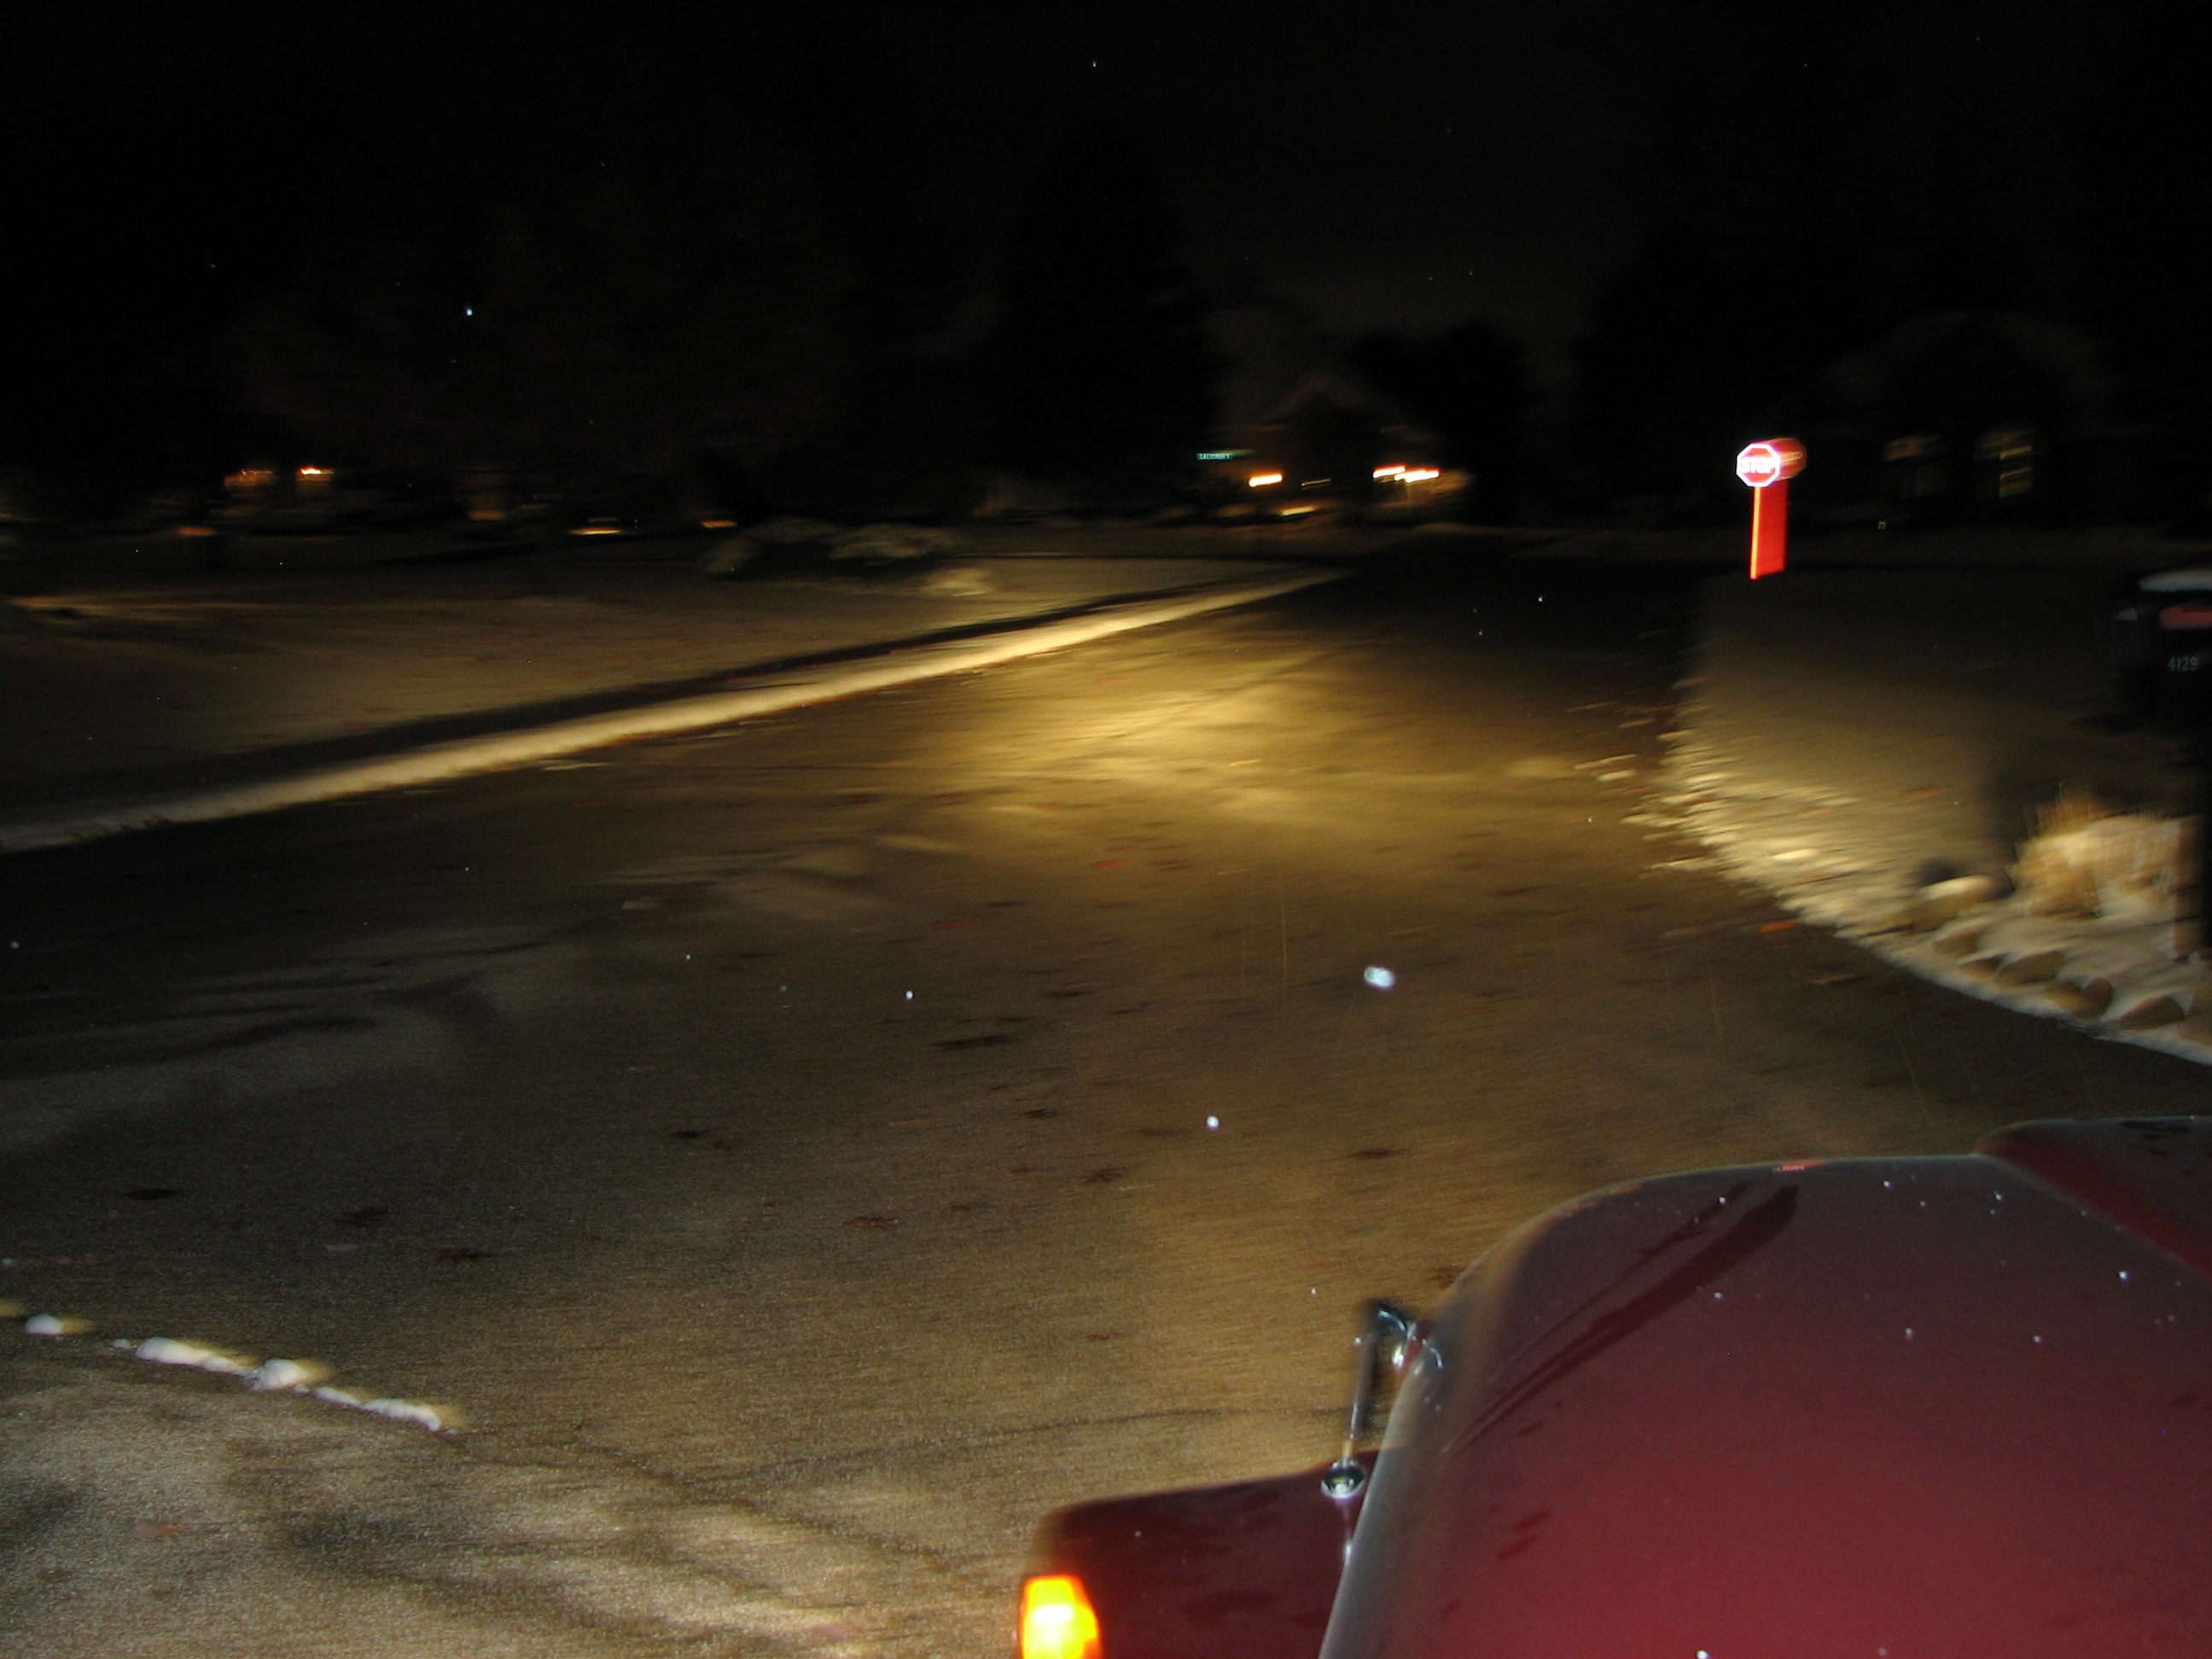 How To Upgrade Dim Headlights With A Headlight Relay Mod Jeep Cj Harness You Can See That The Now Easily Illuminate Cross Street About 50 Yards Ahead For Of This Vintage